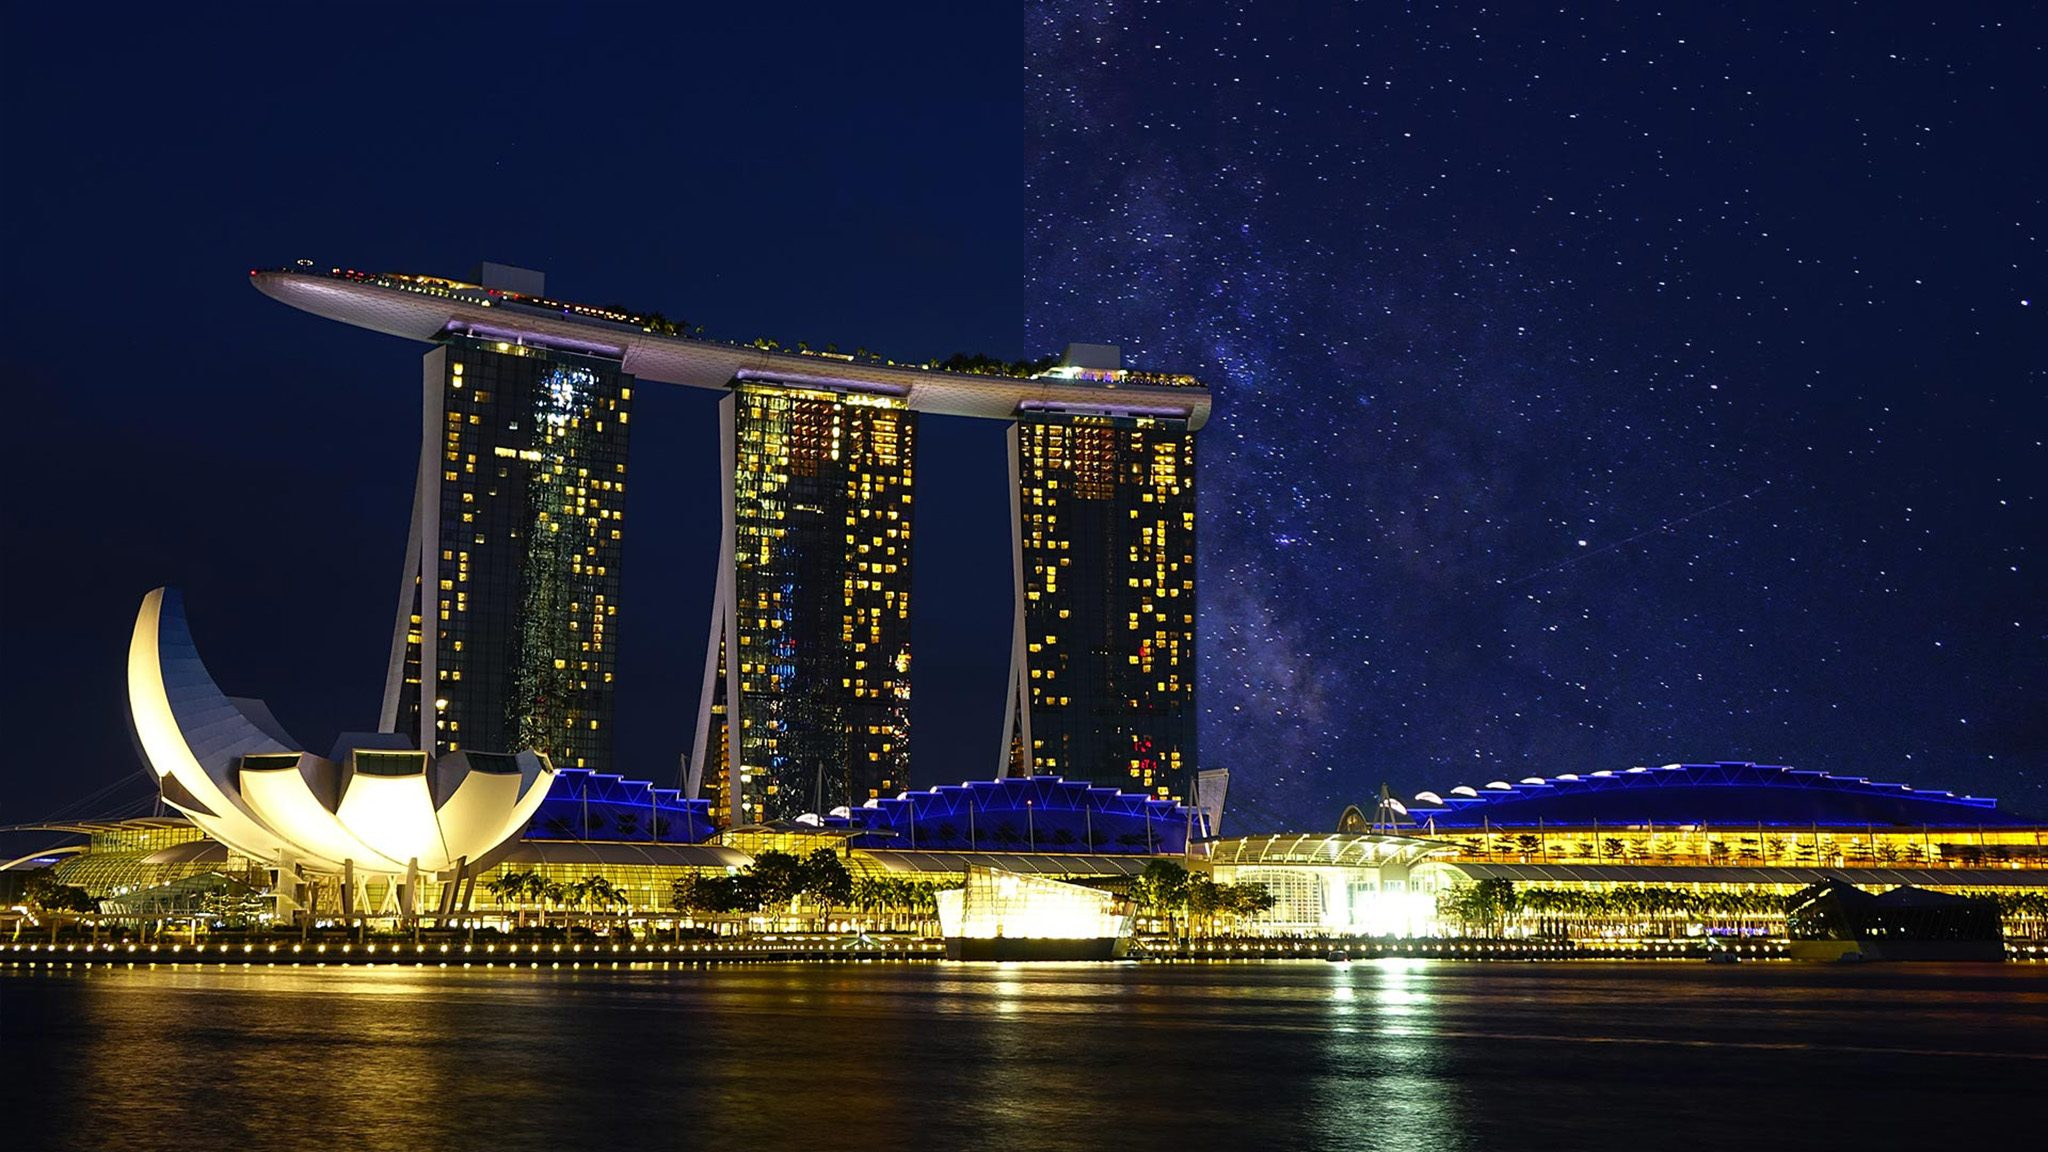 Singapore Asia light pollution city